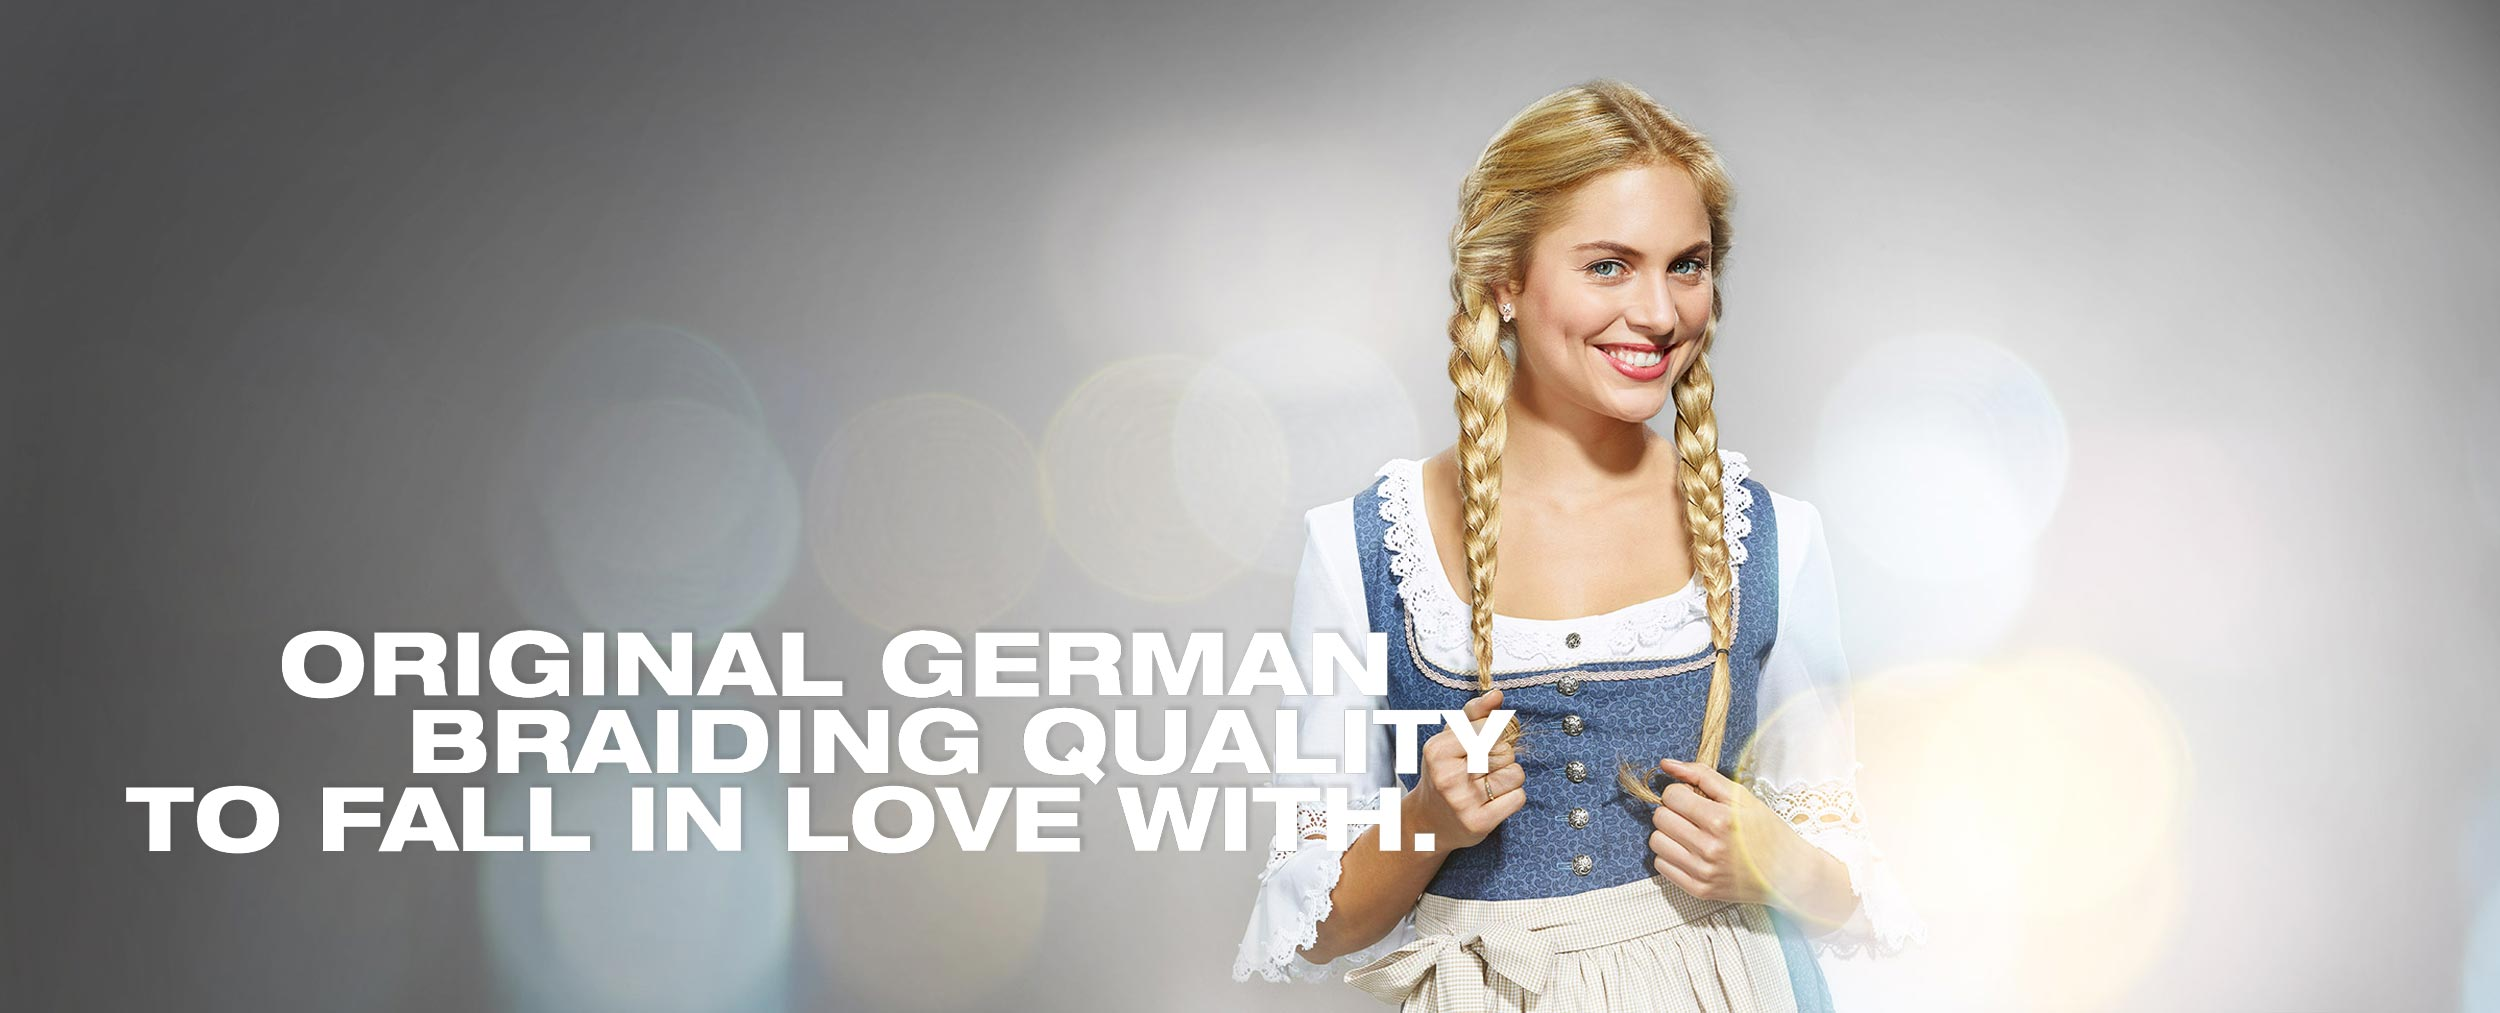 german-braiding-quality-to-fall-in-love-with-herzog